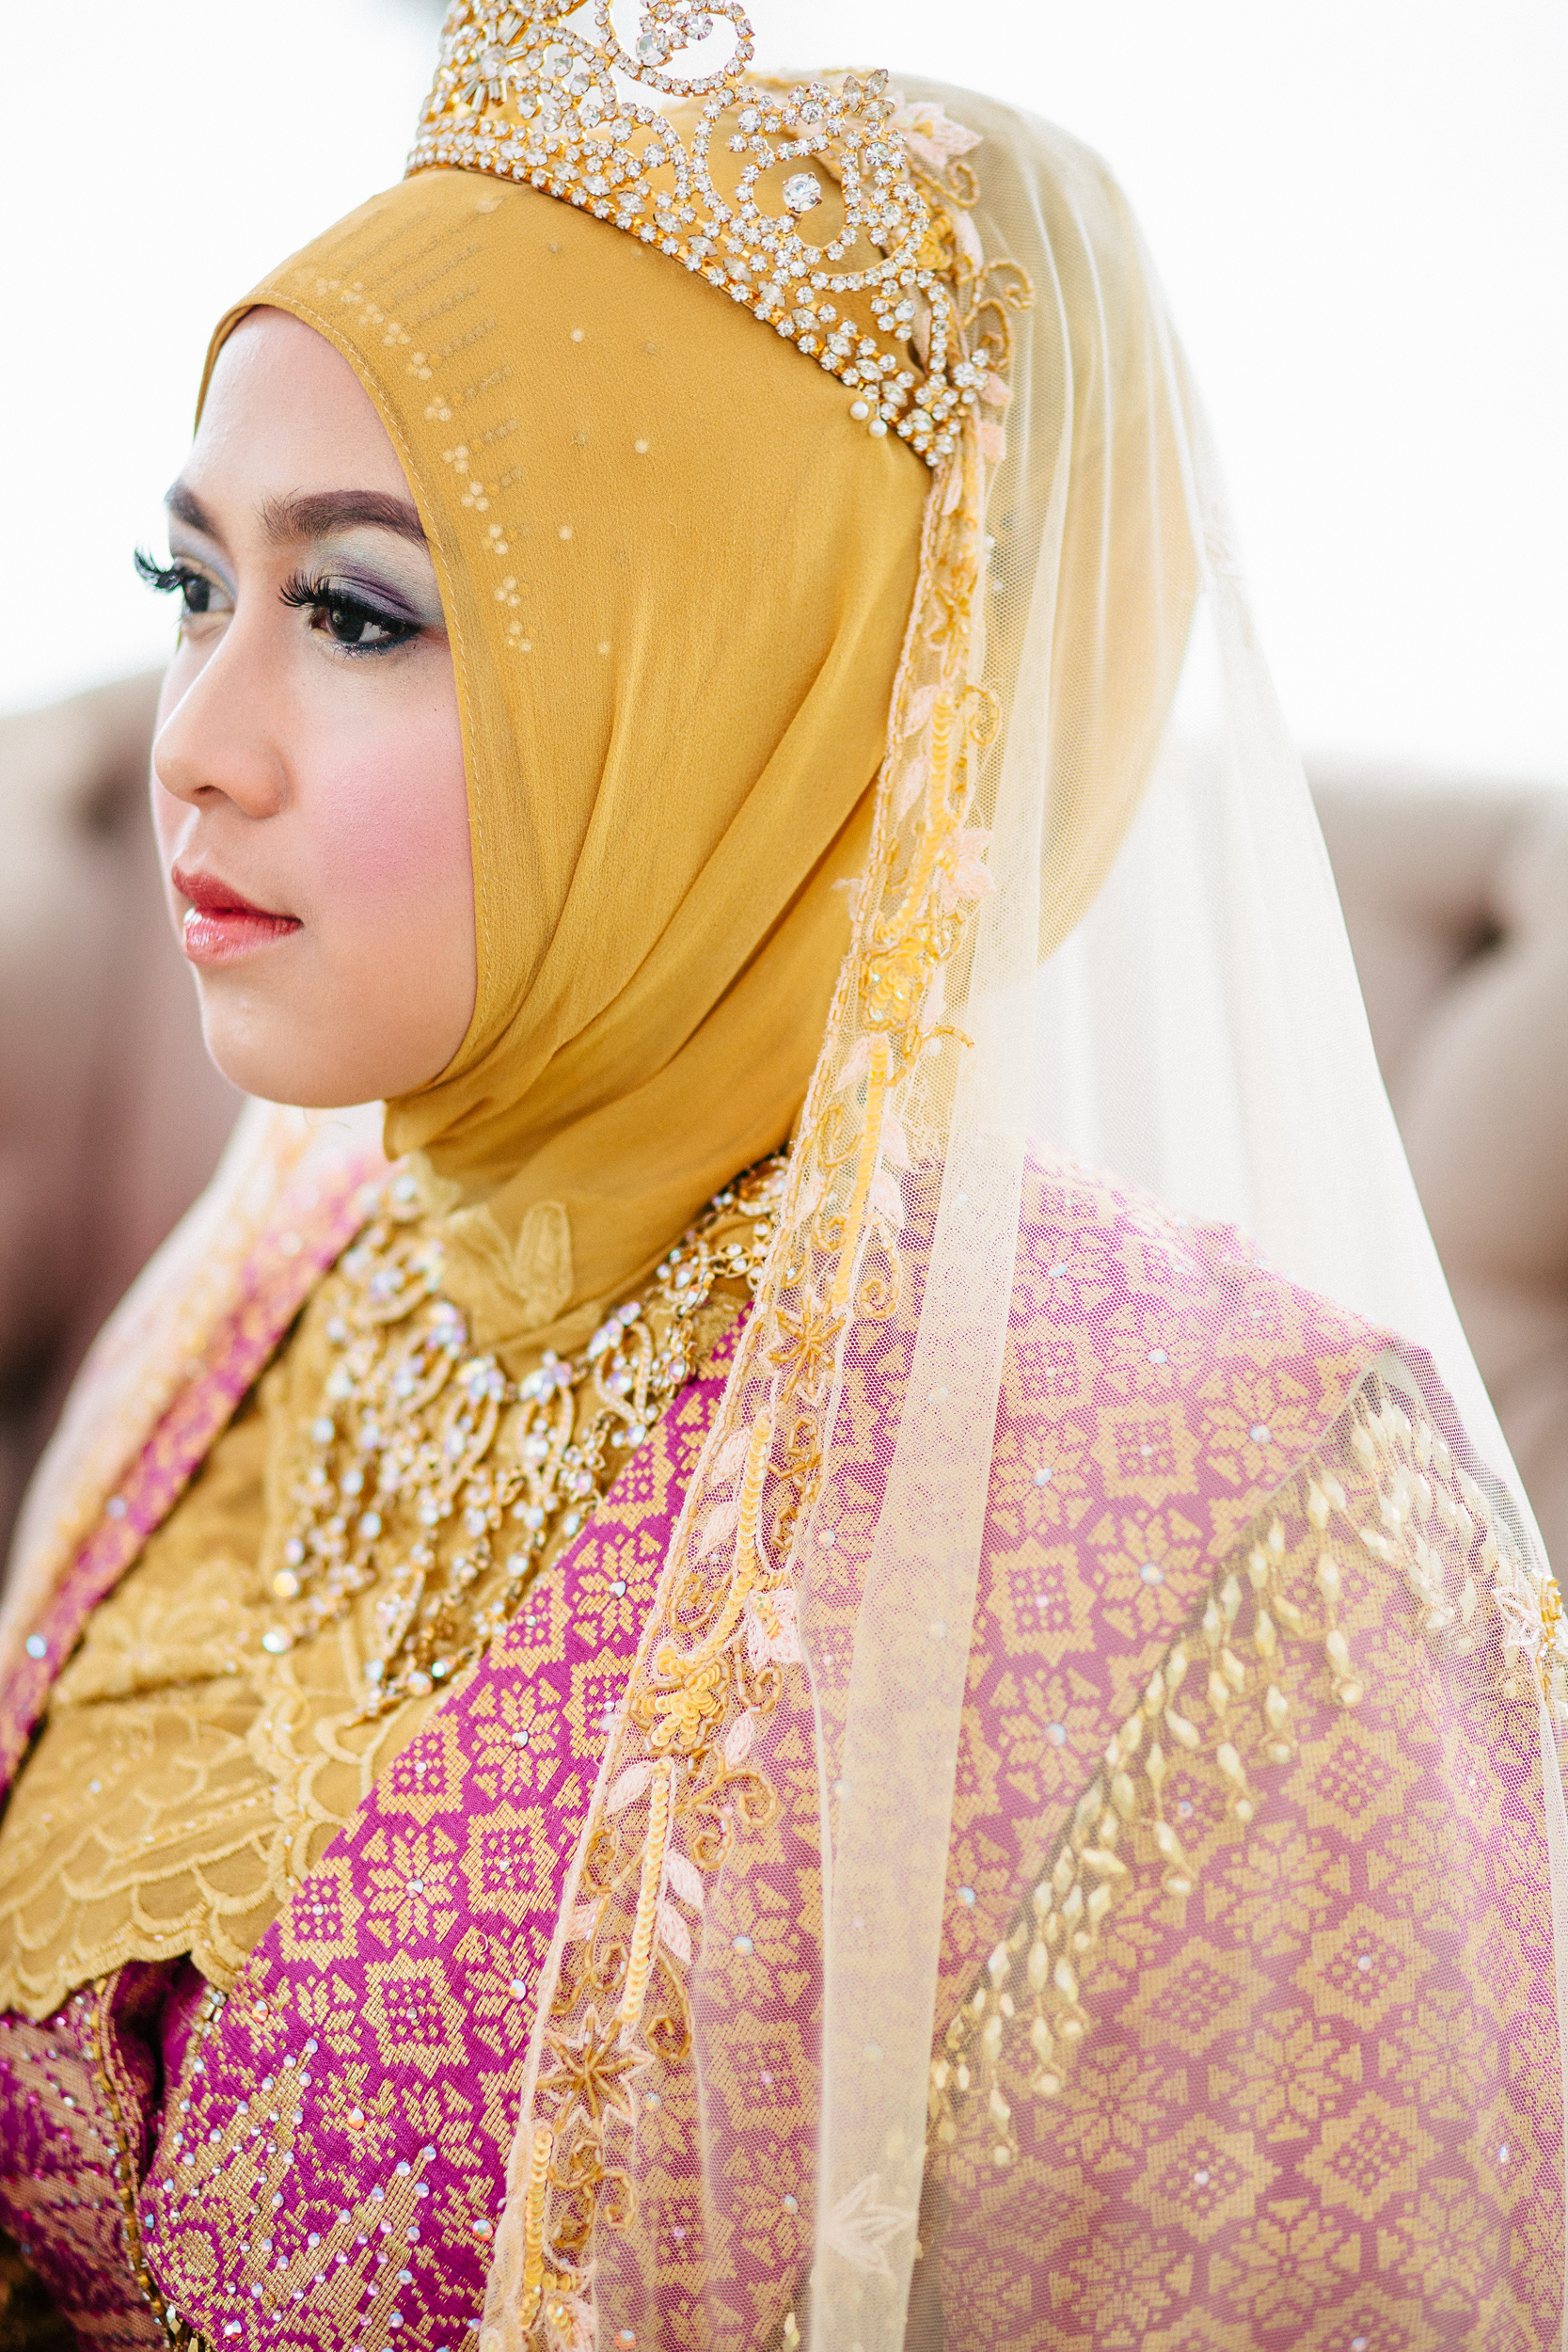 singapore-wedding-photographer-wemadethese-aisyah-helmi-41.jpg